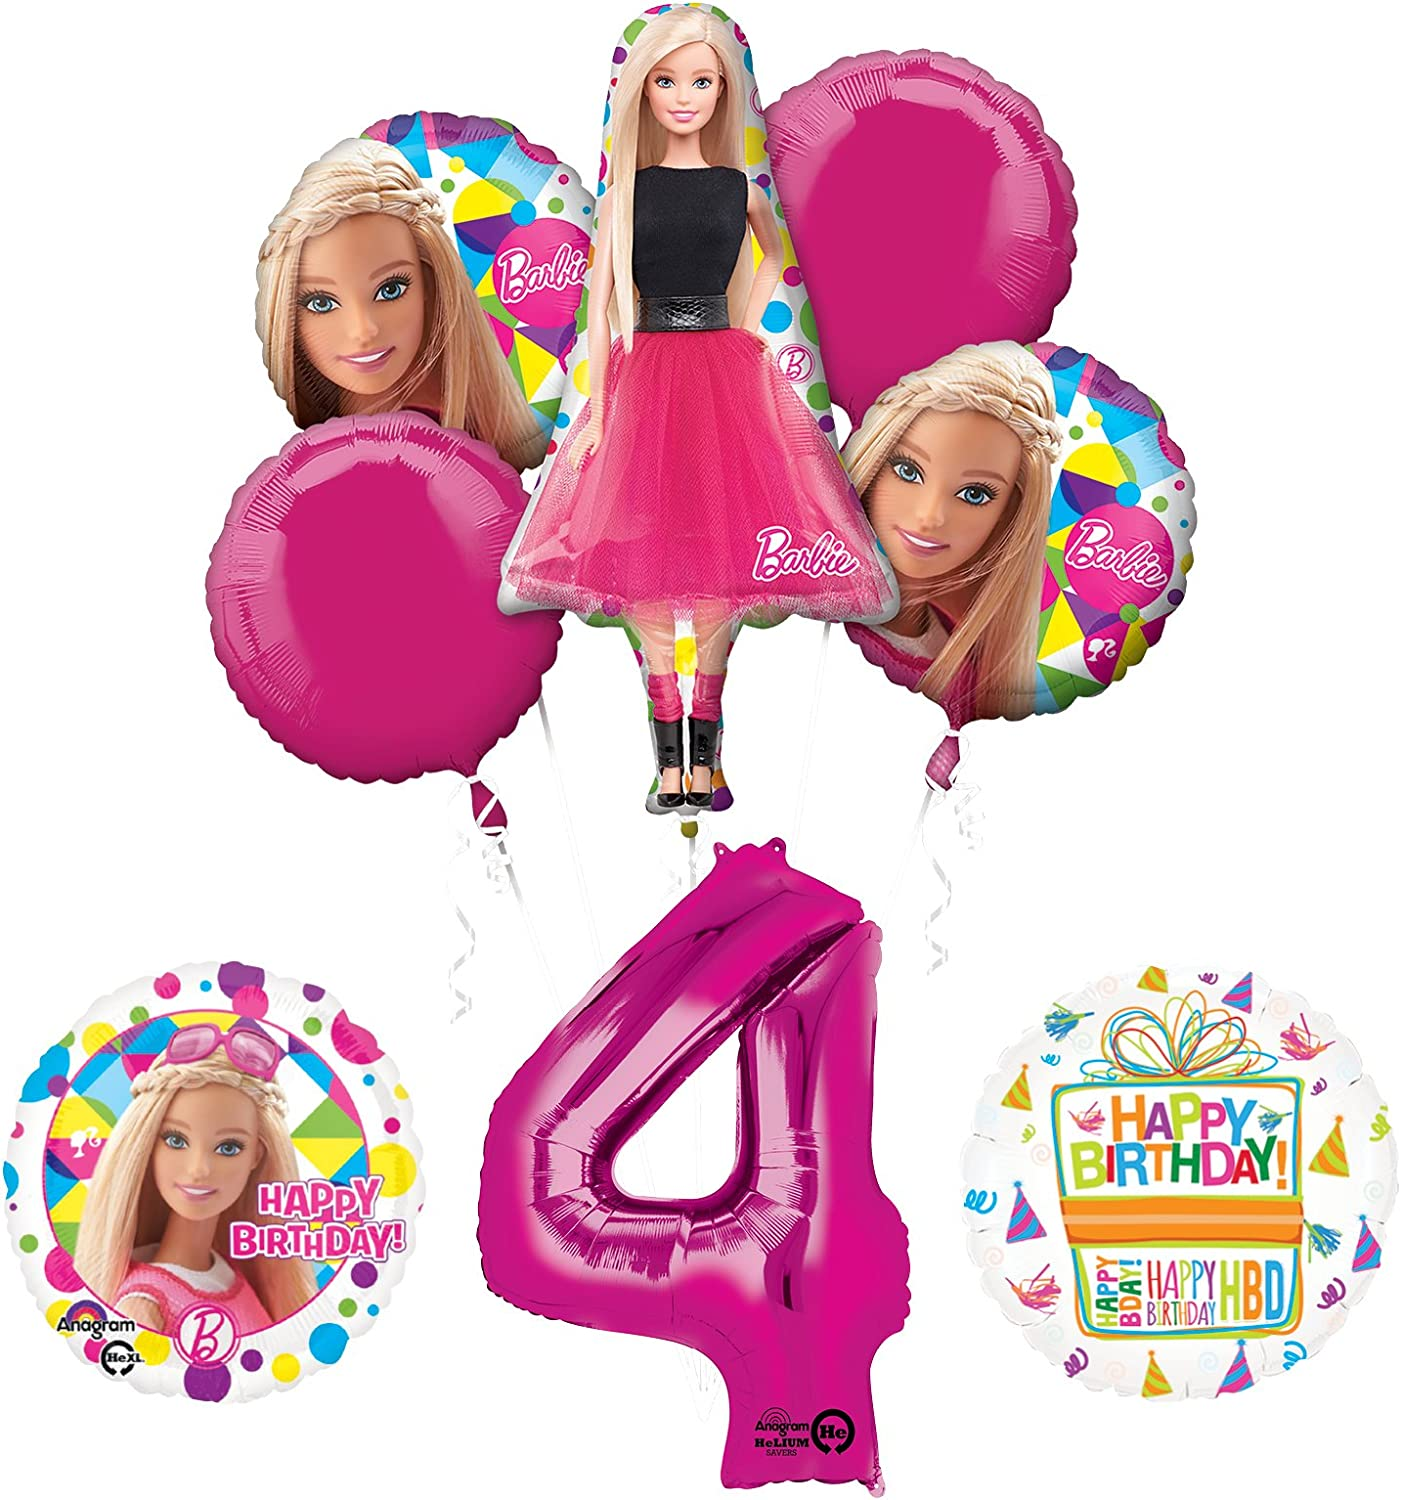 Barbie 4th Birthday Party Supplies and Balloon Bouquet Decorations